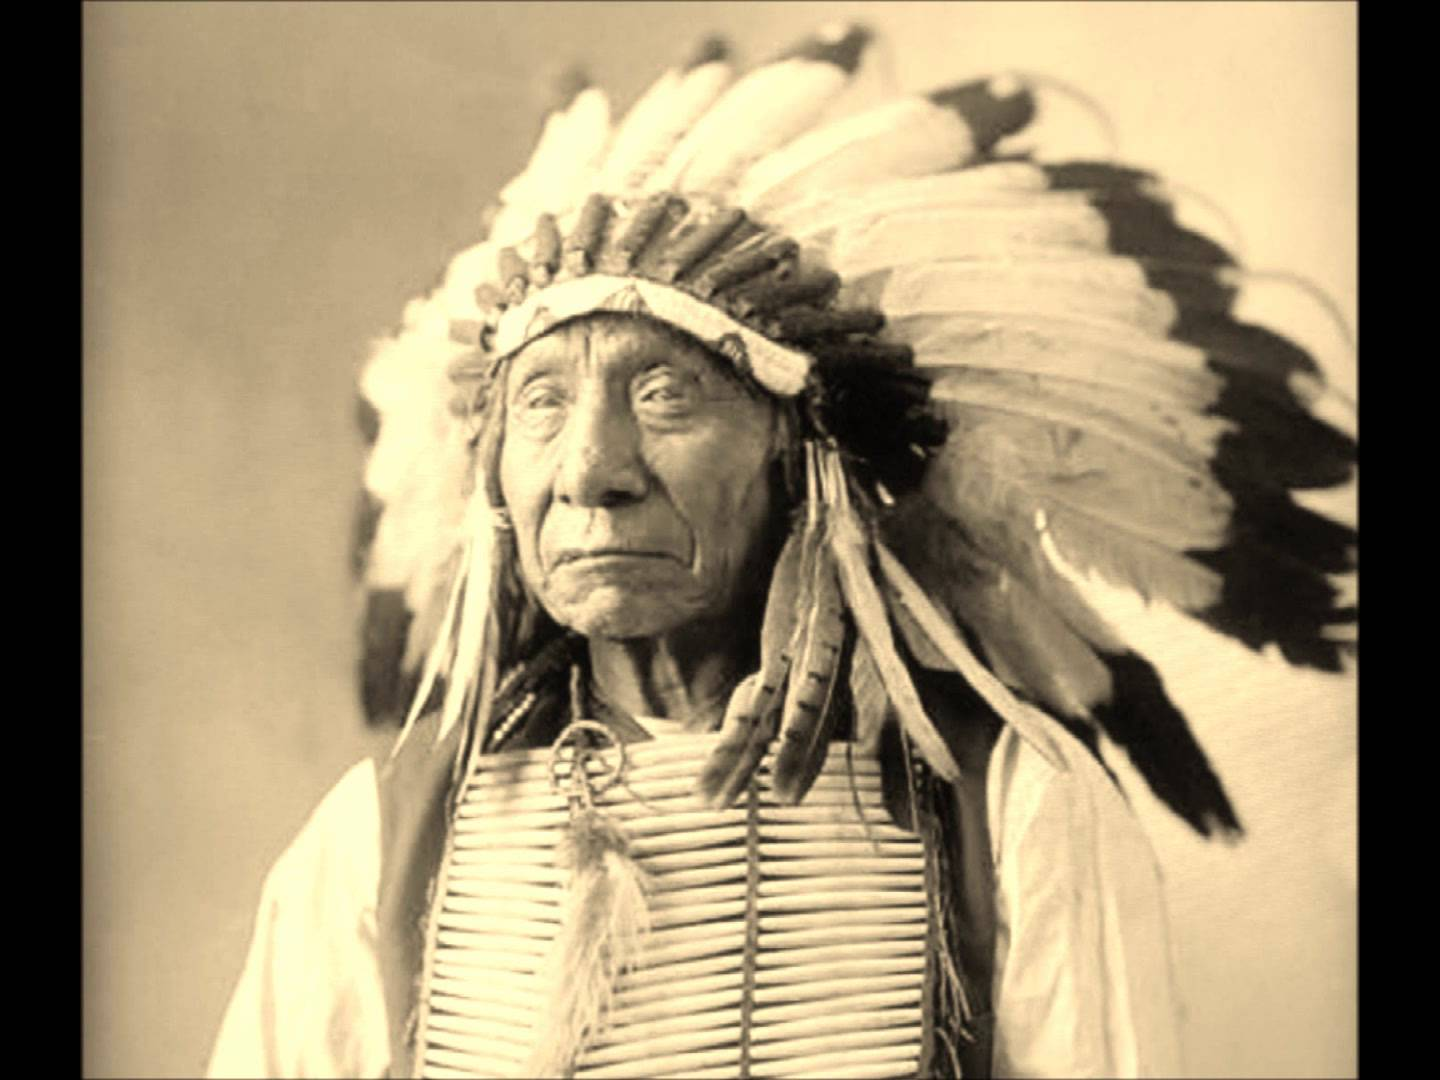 June 9 1870 Chief Red Cloud Meets With Ulysses S Grant At The